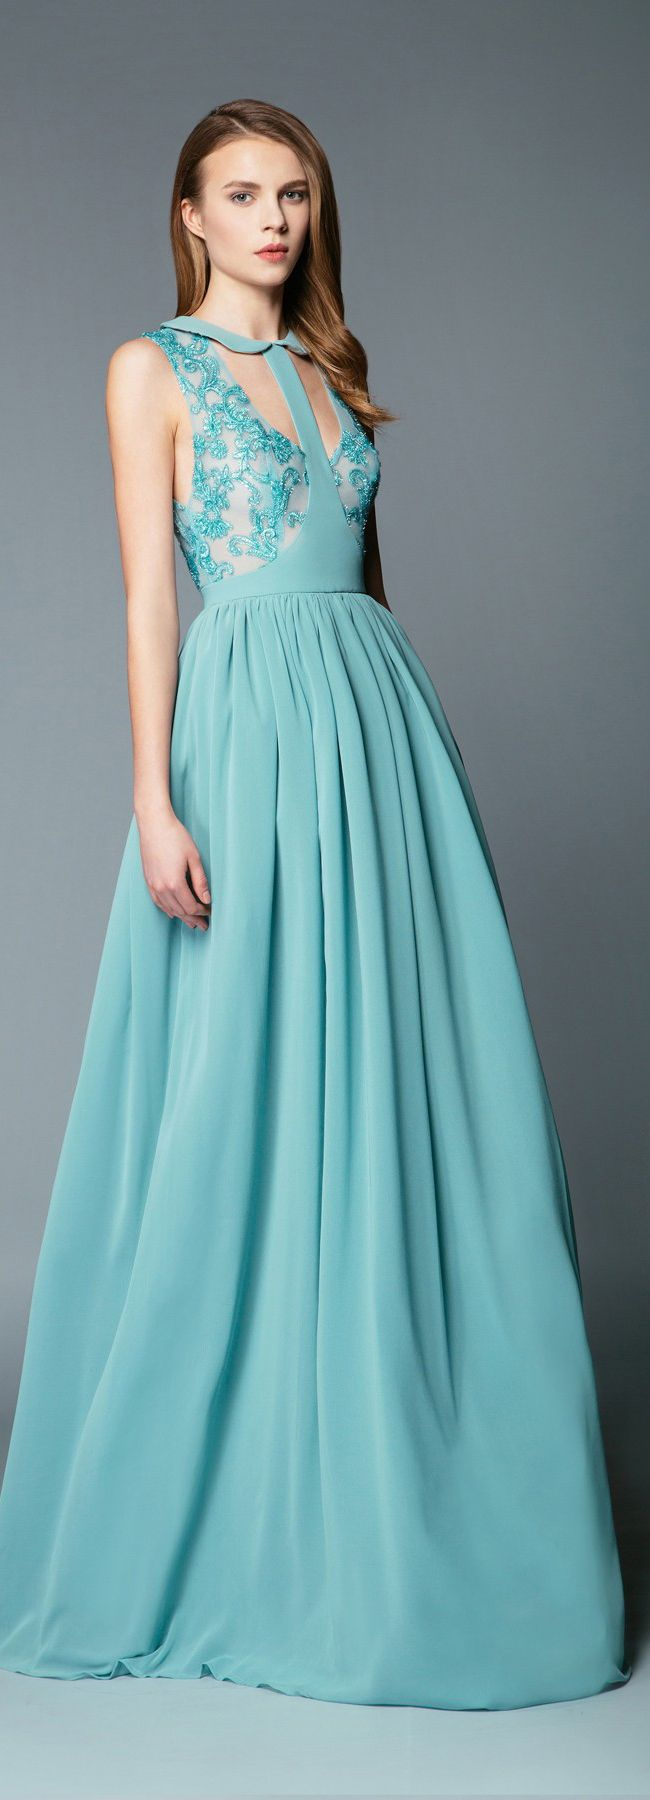 201 best Georges Hobeika... images on Pinterest | Ball dresses, Ball ...